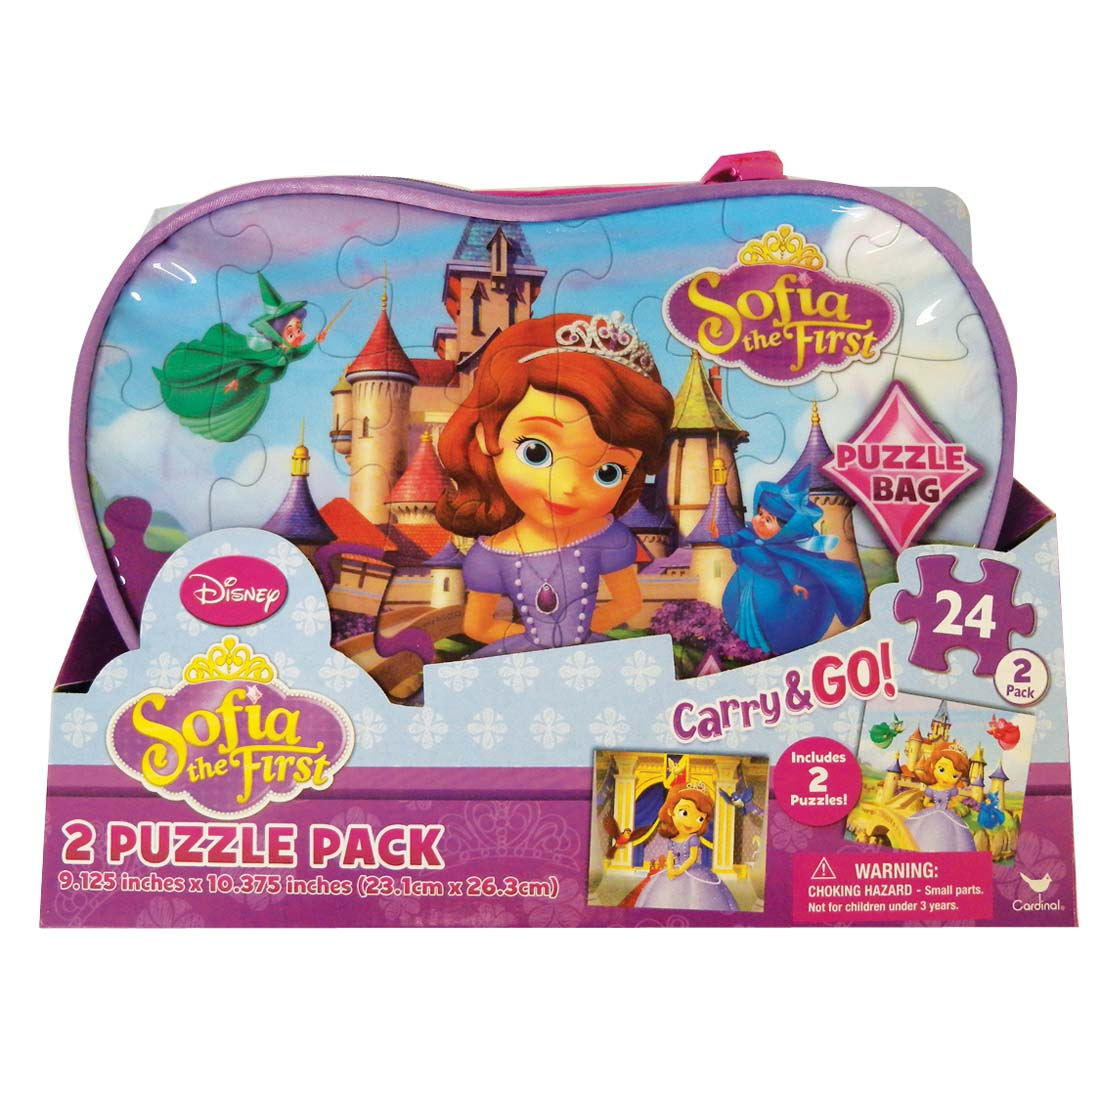 View DISNEY SOPHIA THE FIRST PUZZLE 24 PIECE 2 PACK CARRY AND GO